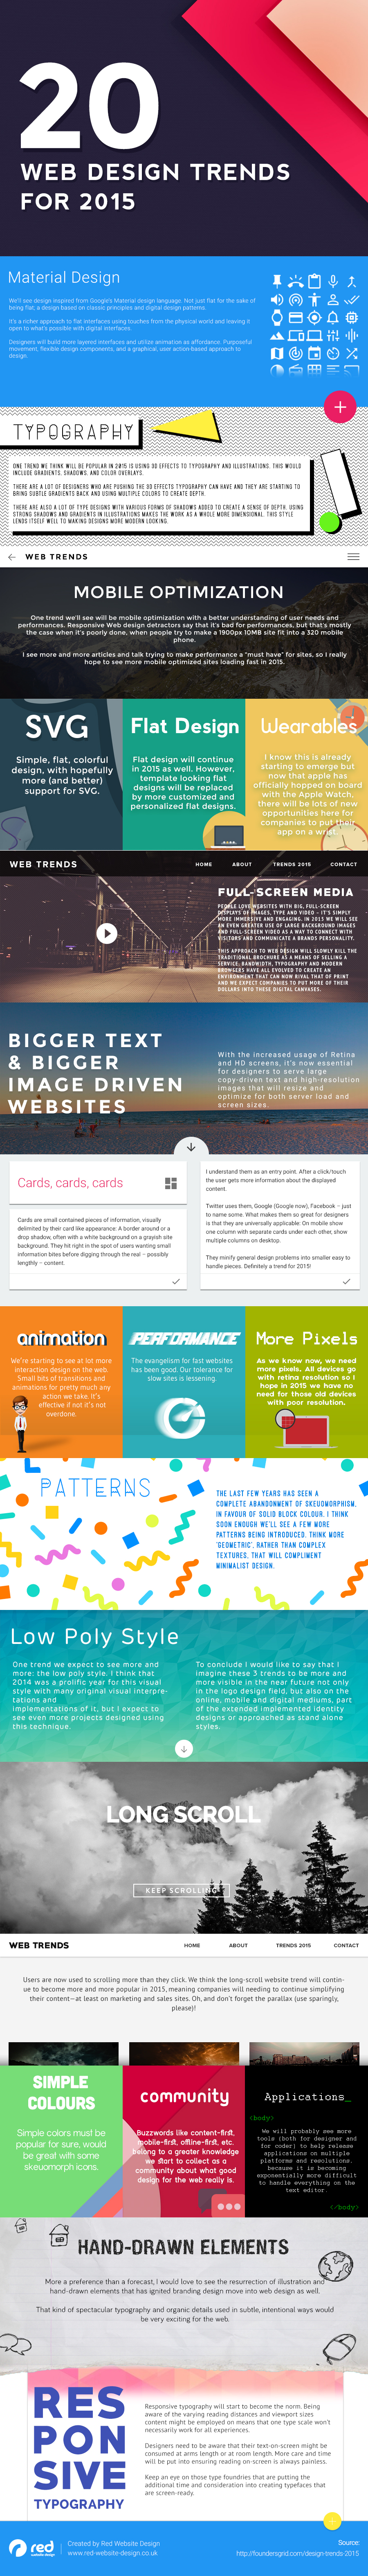 20 Web Design Trends That Will Shape The Internet in 2015